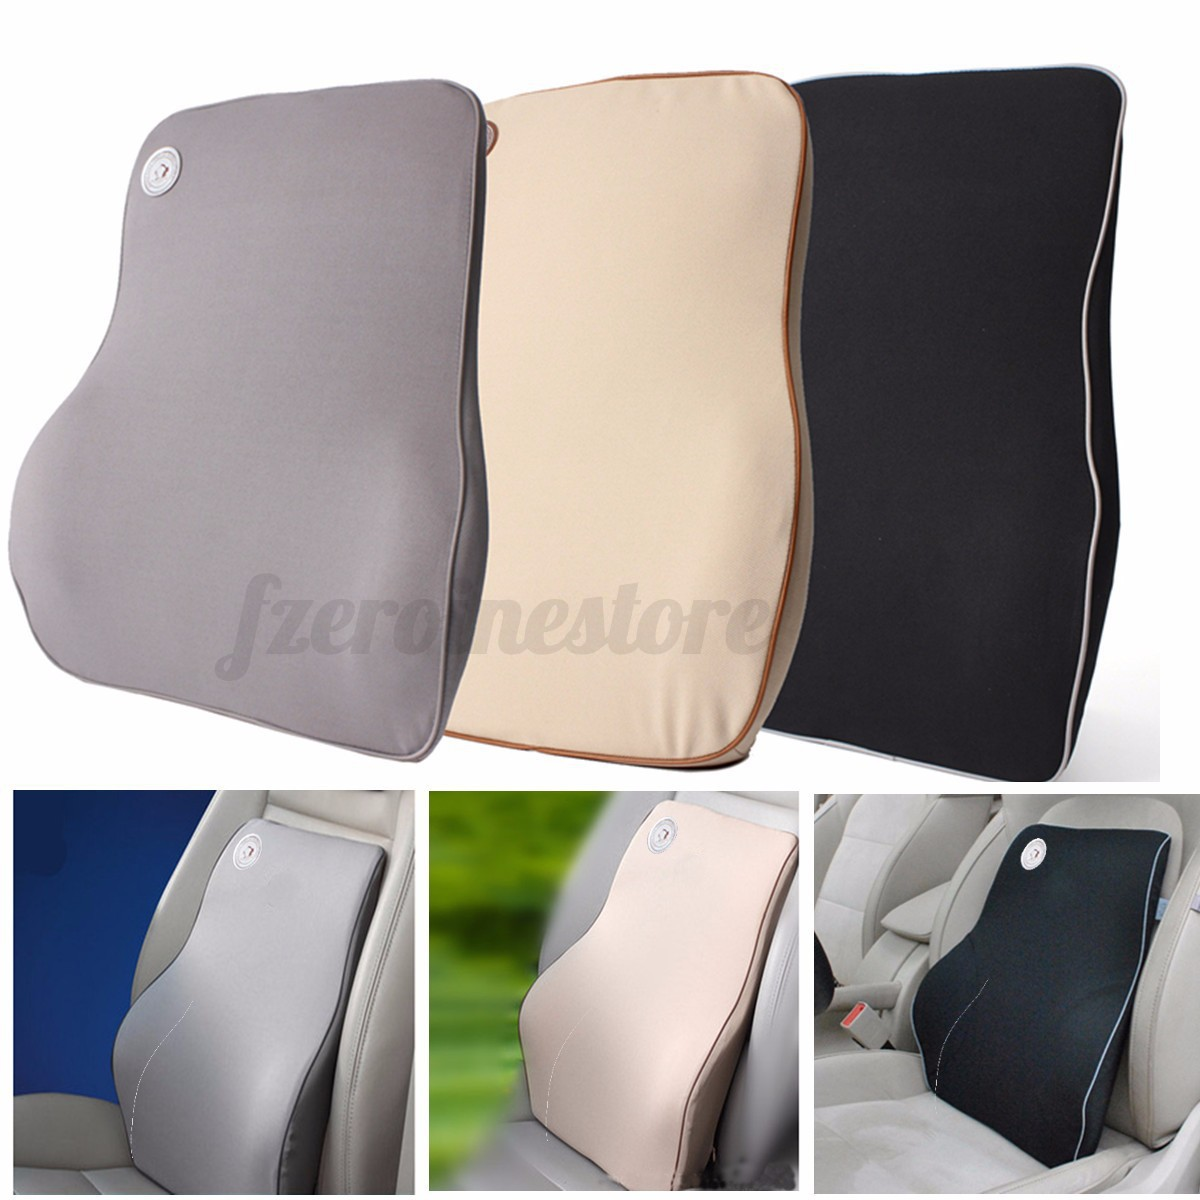 Head Stabilizer For Car Seat